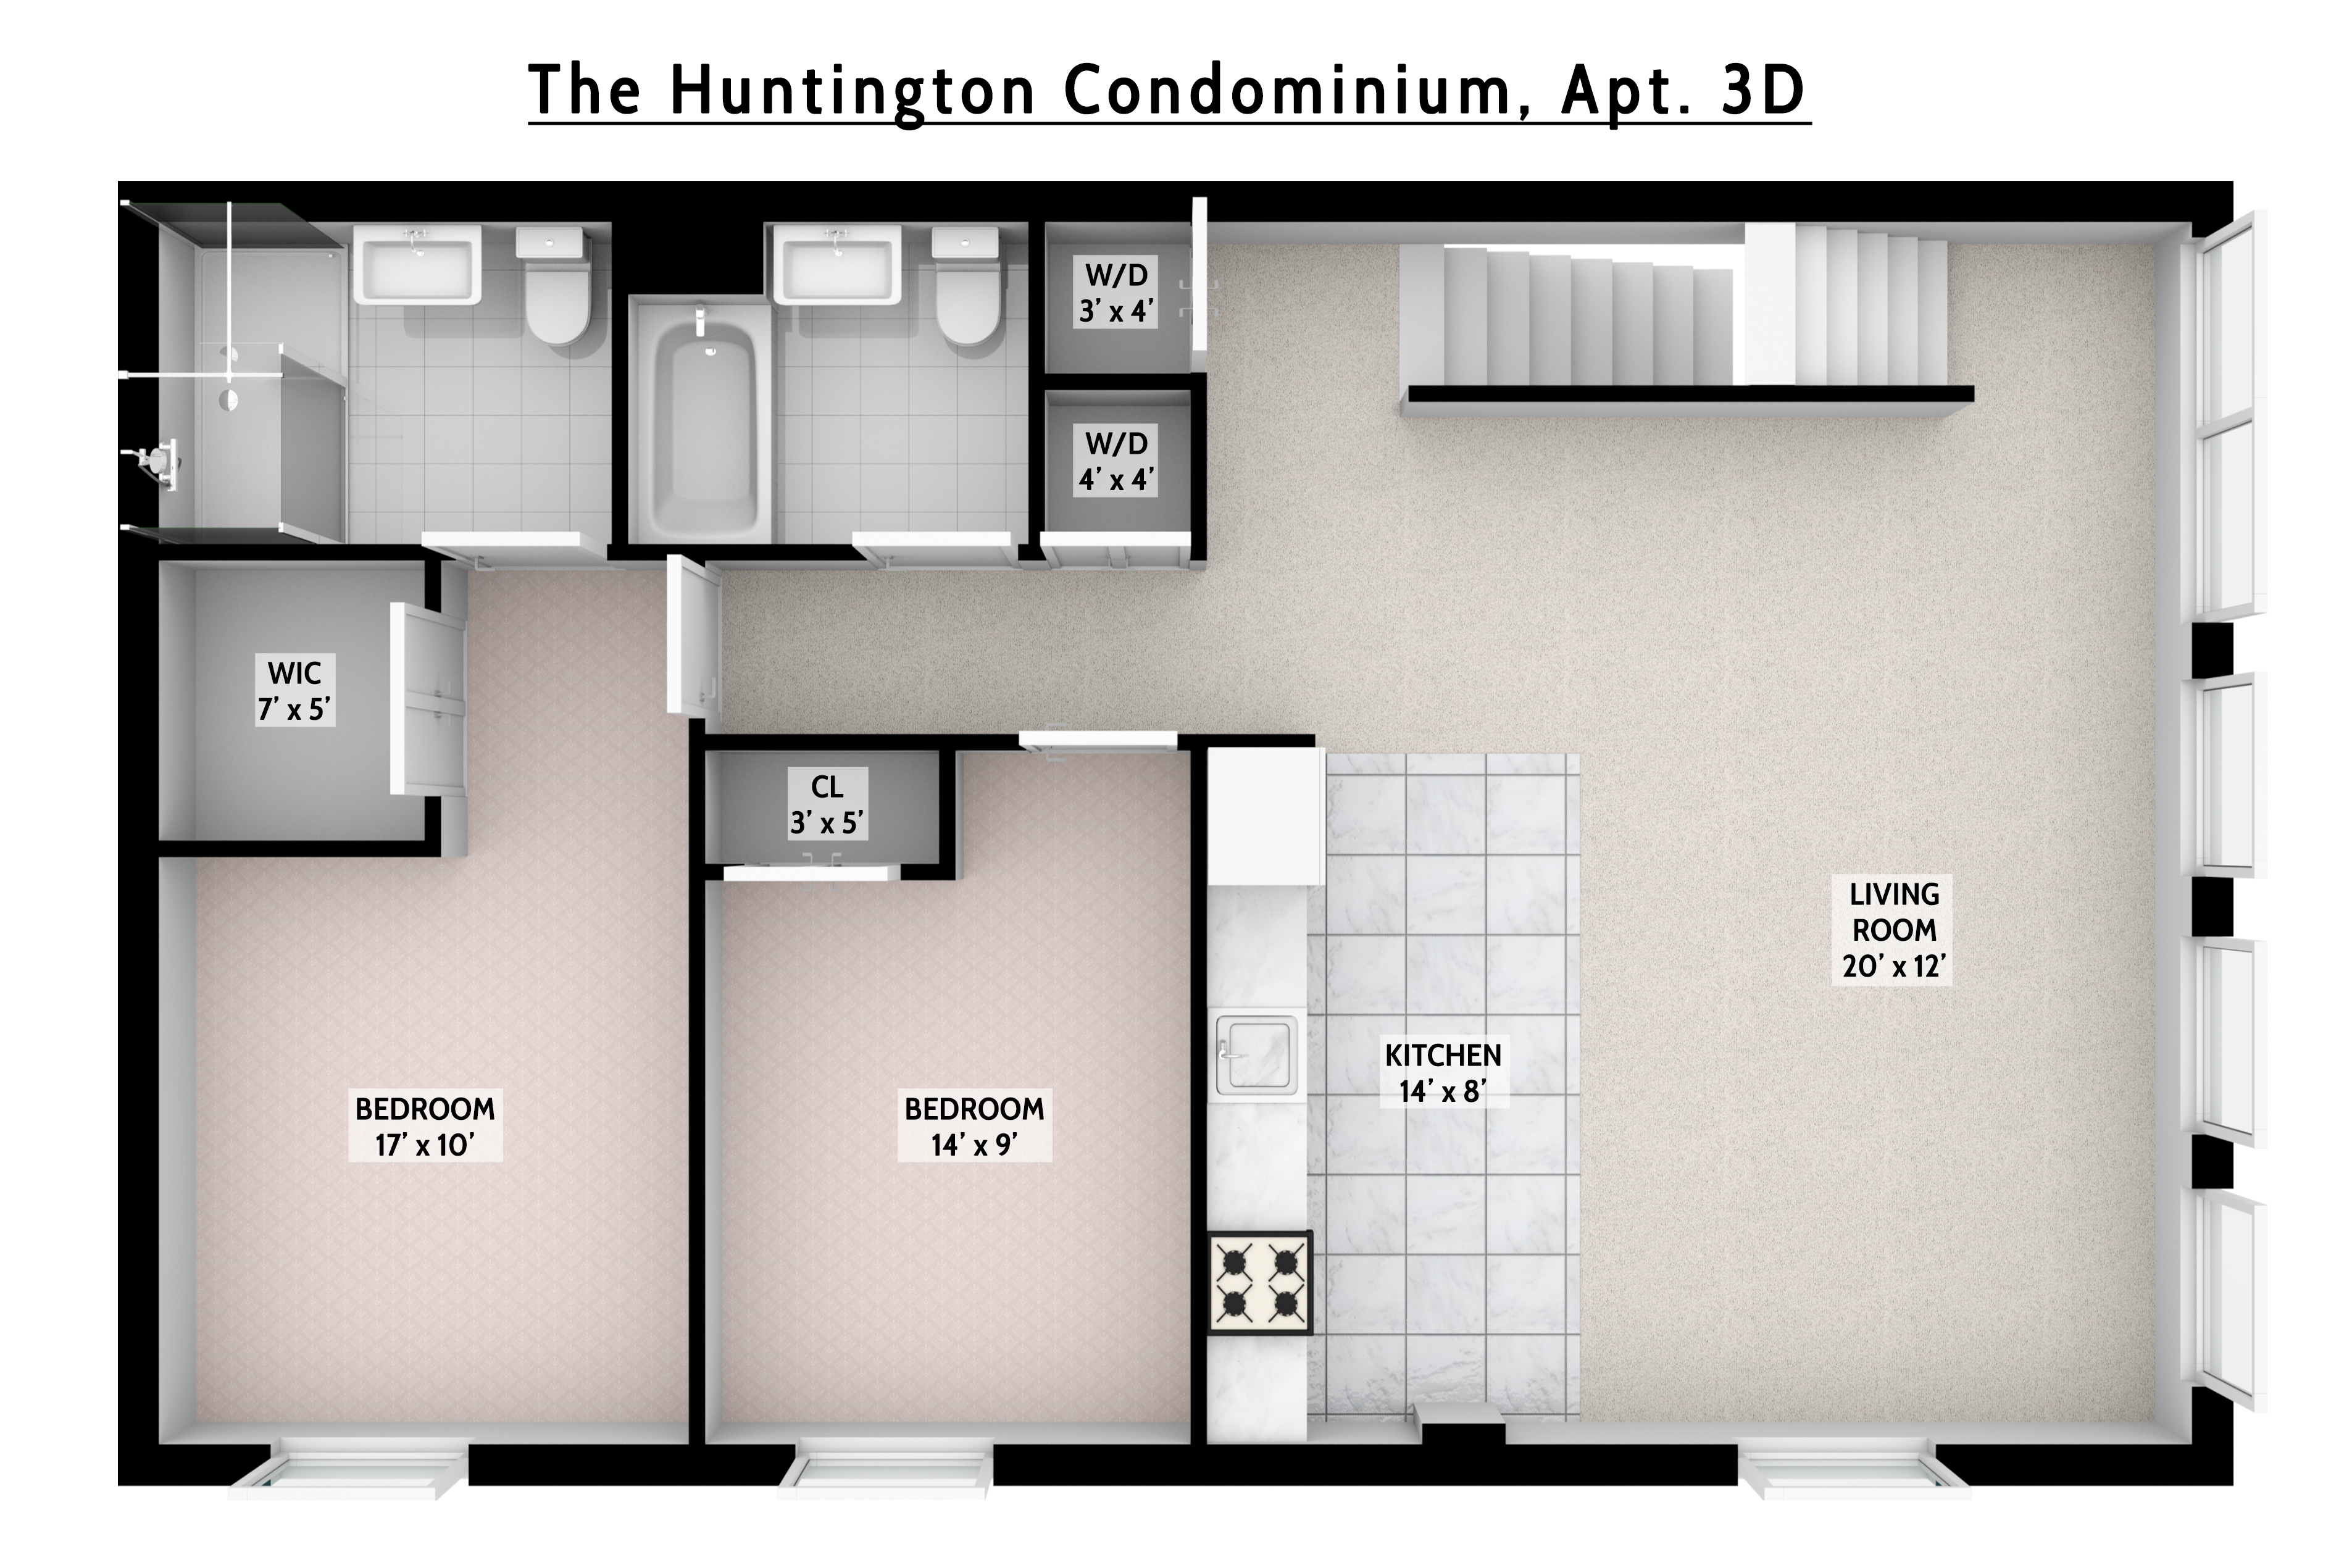 Apartment for sale at 40 Huntington Street, Apt 3D